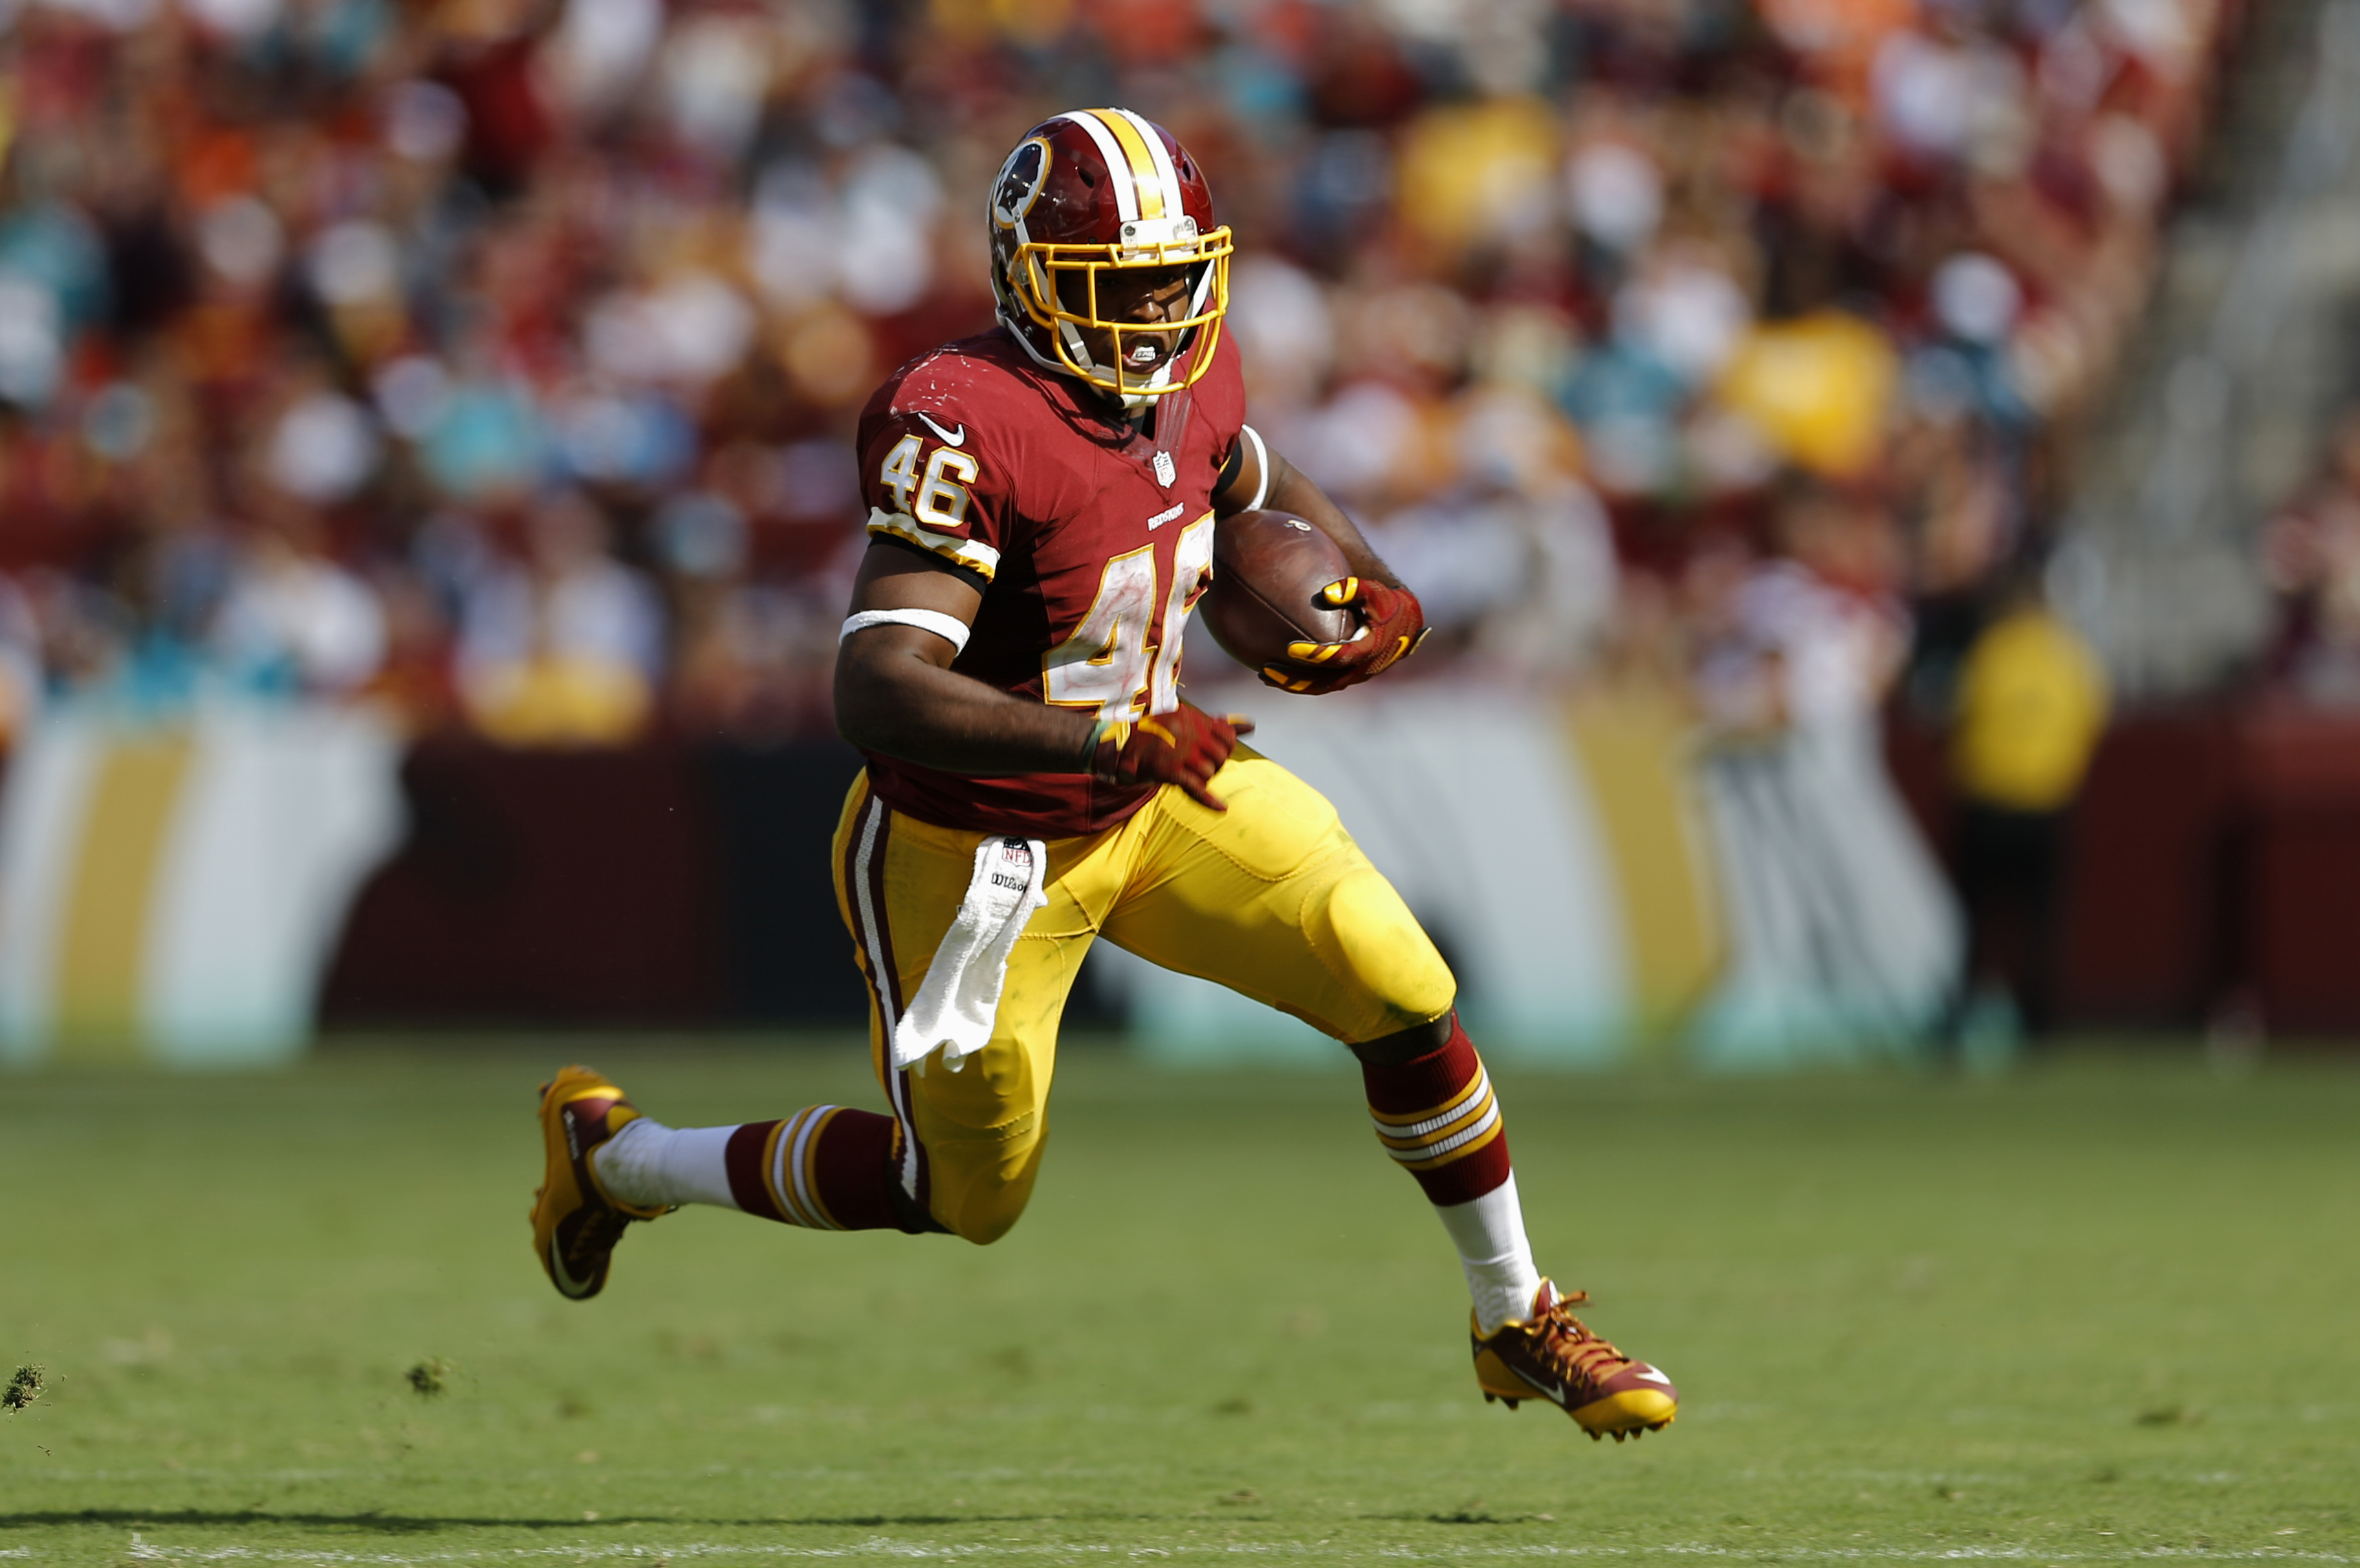 In this photo taken Sept. 13, 2015, Washington Redskins running back Alfred Morris rushes the ball during the second half of an NFL football game against the Miami Dolphins in Landover, Md. By adding rookie Matt Jones to dependable veteran Morris, the Was